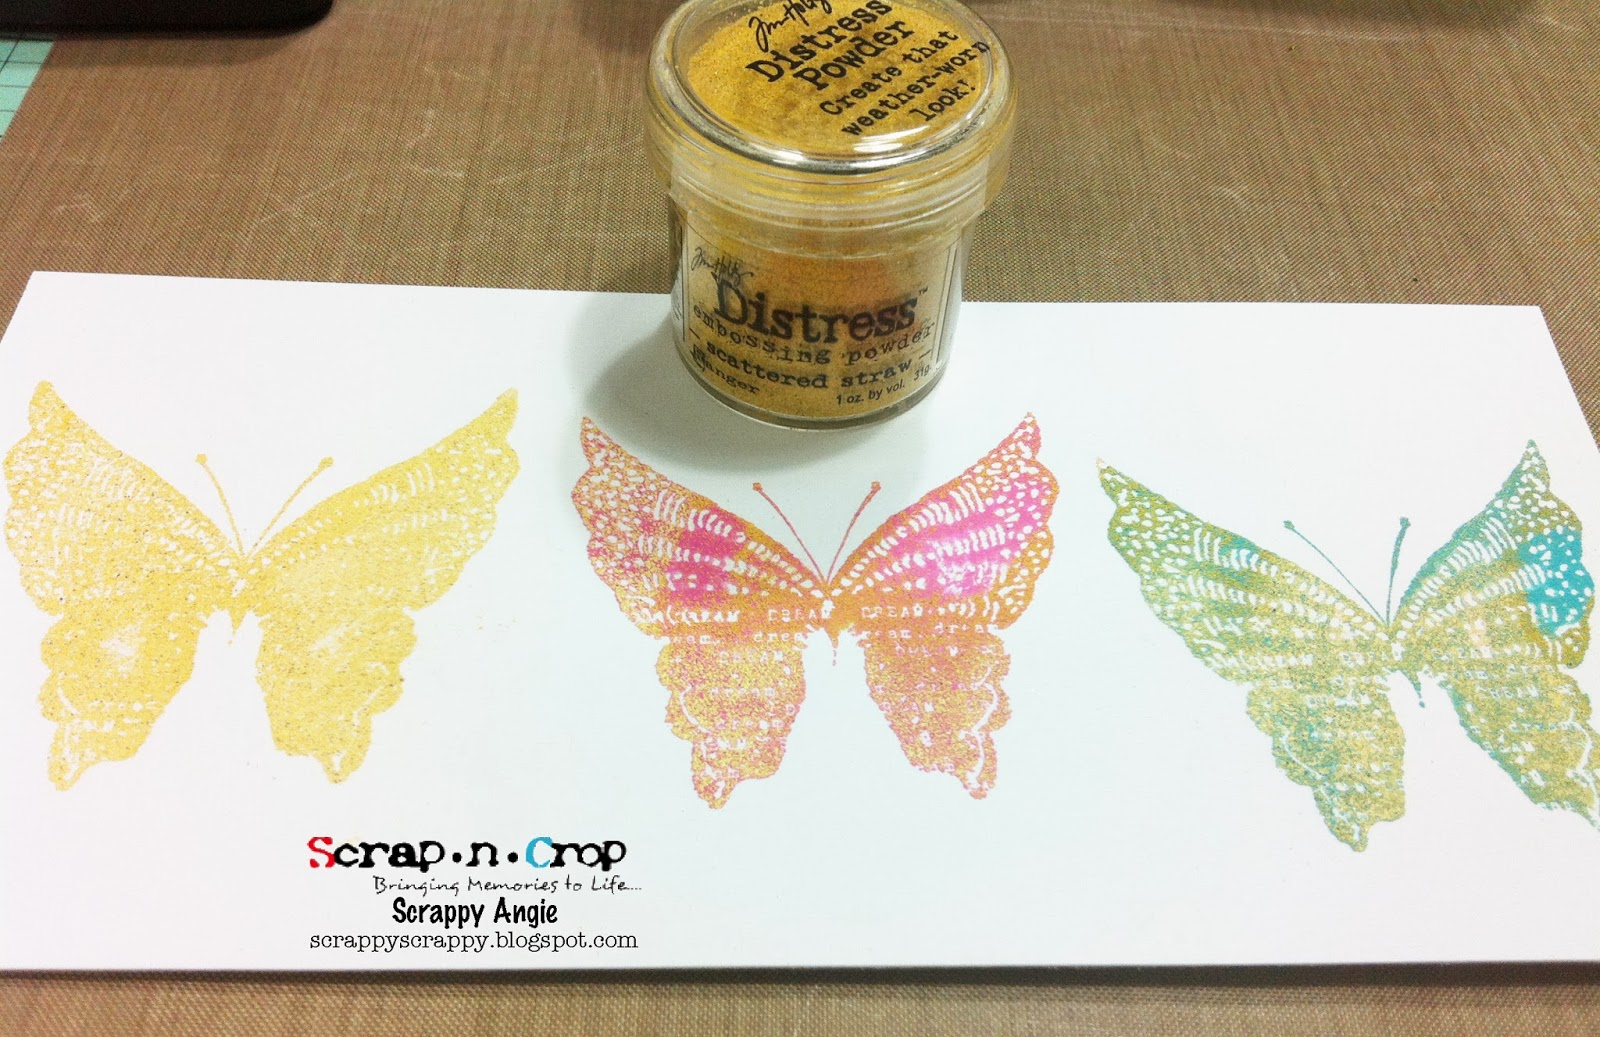 snc s crop mmunity scrappy angie s distress embossing powder